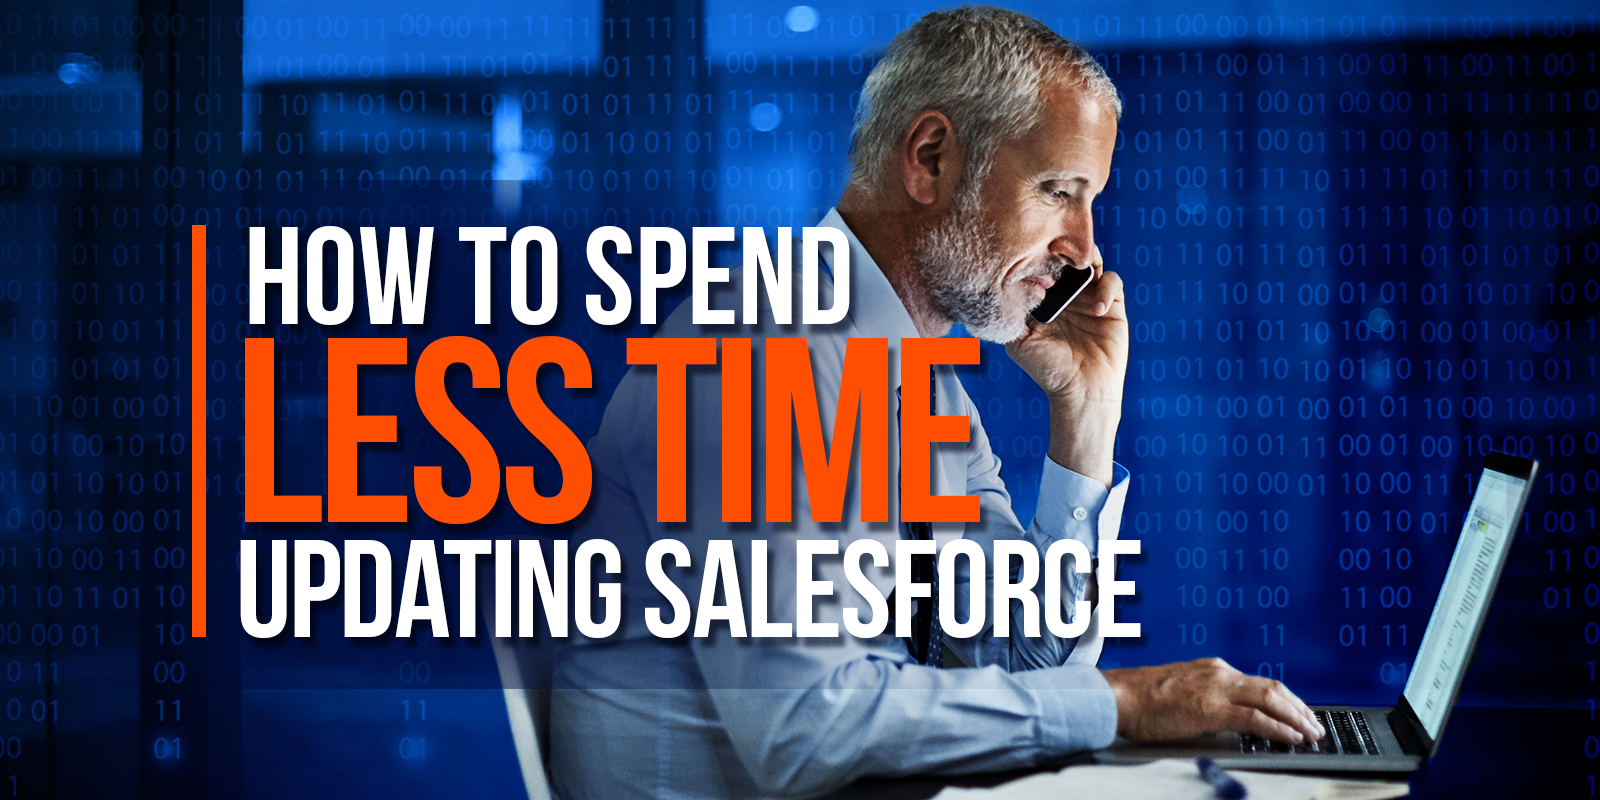 ​How To Spend Less Time Updating Salesforce